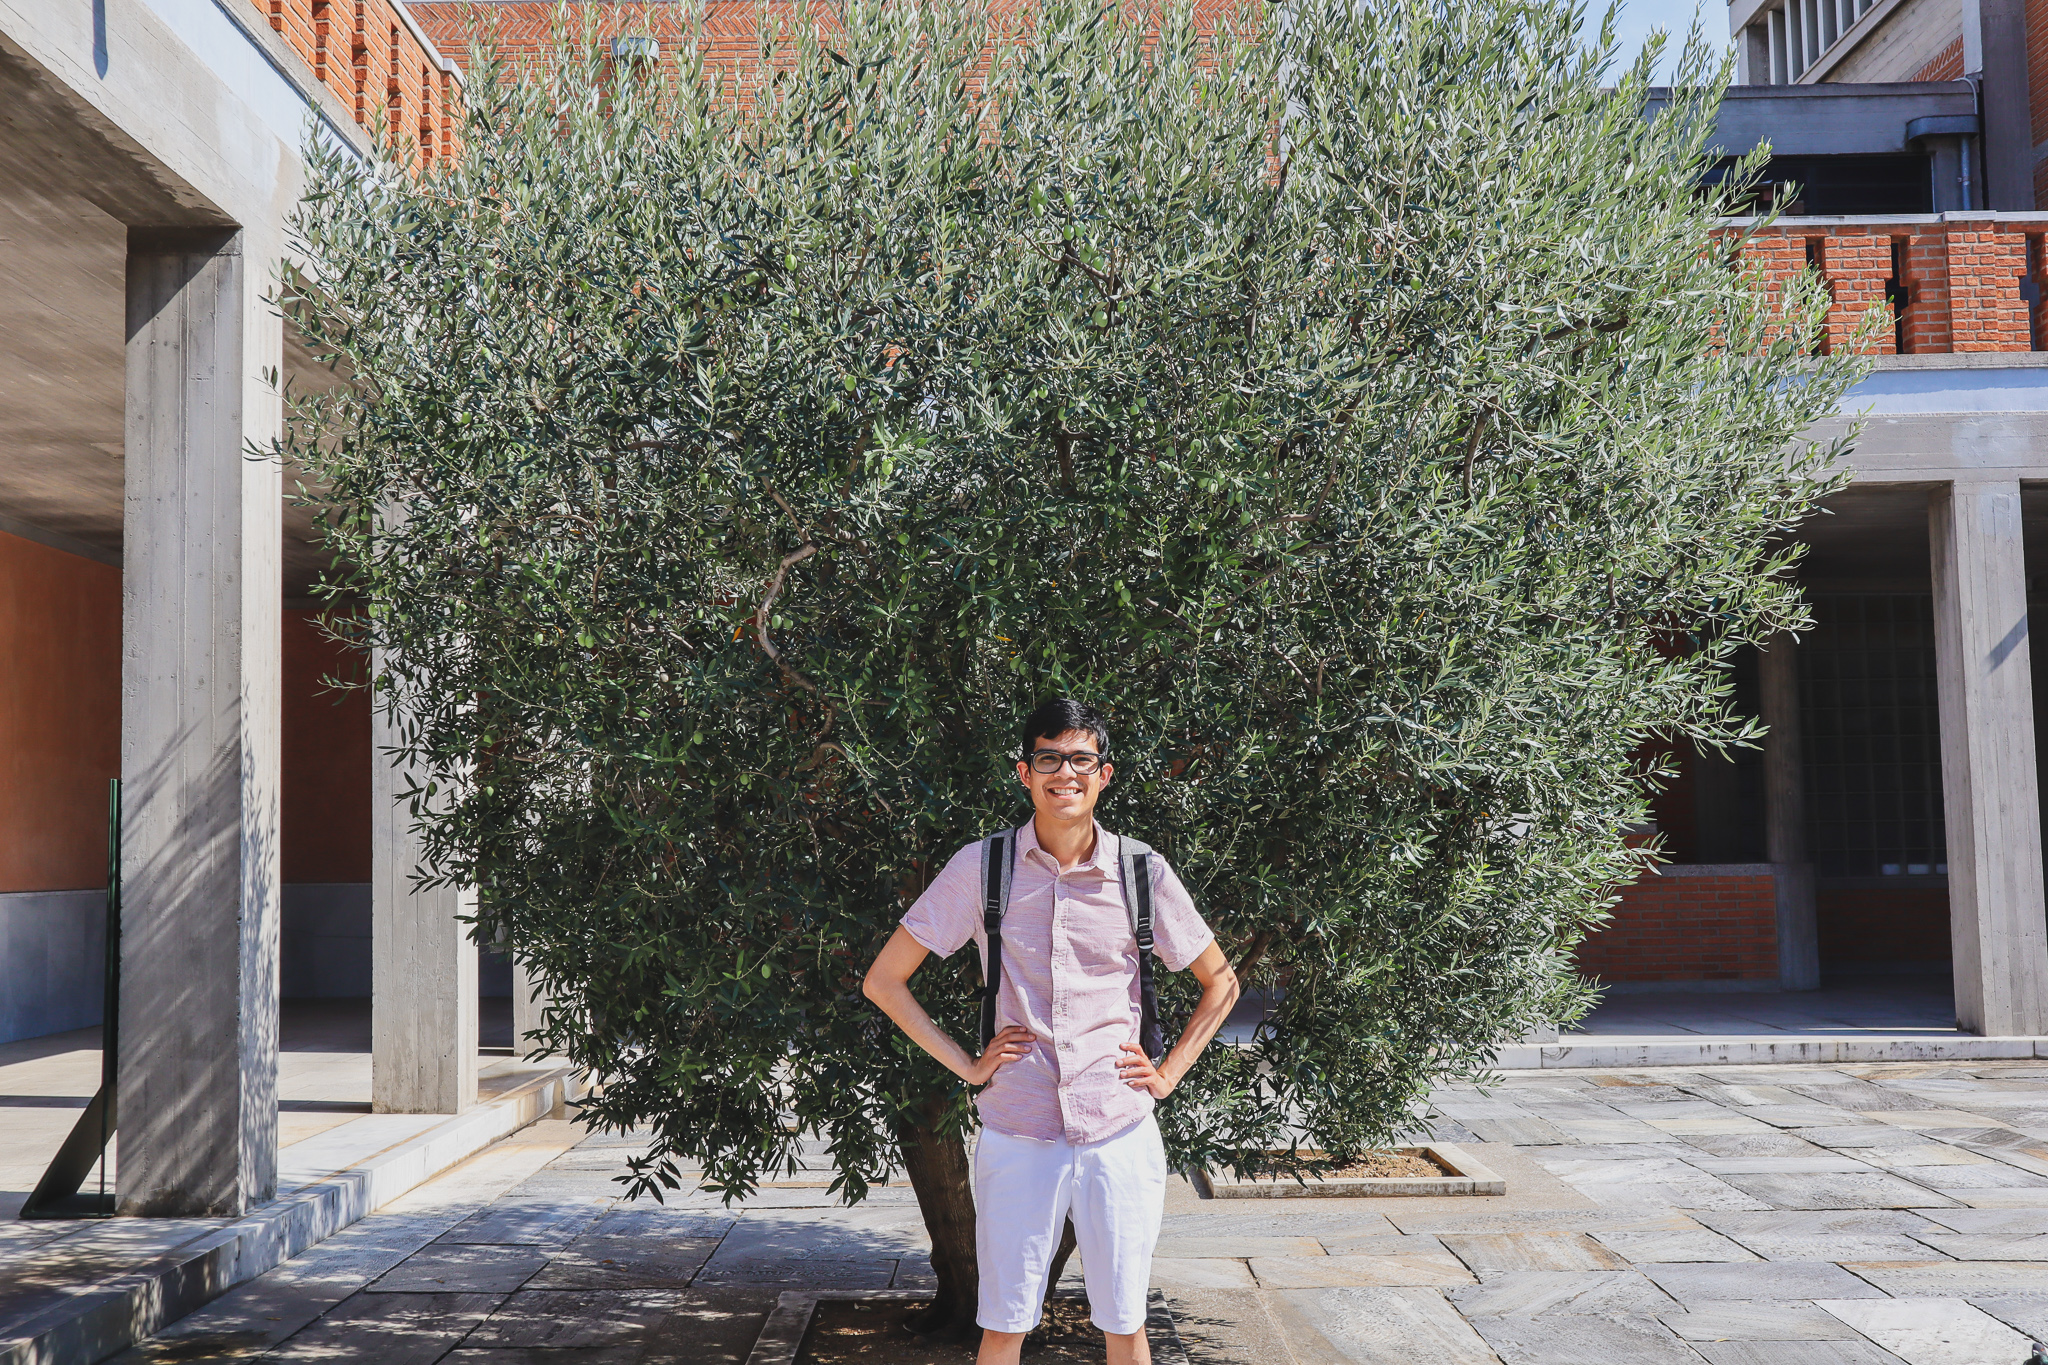 Taken in the courtyard of the Museum of Byzantine Culture